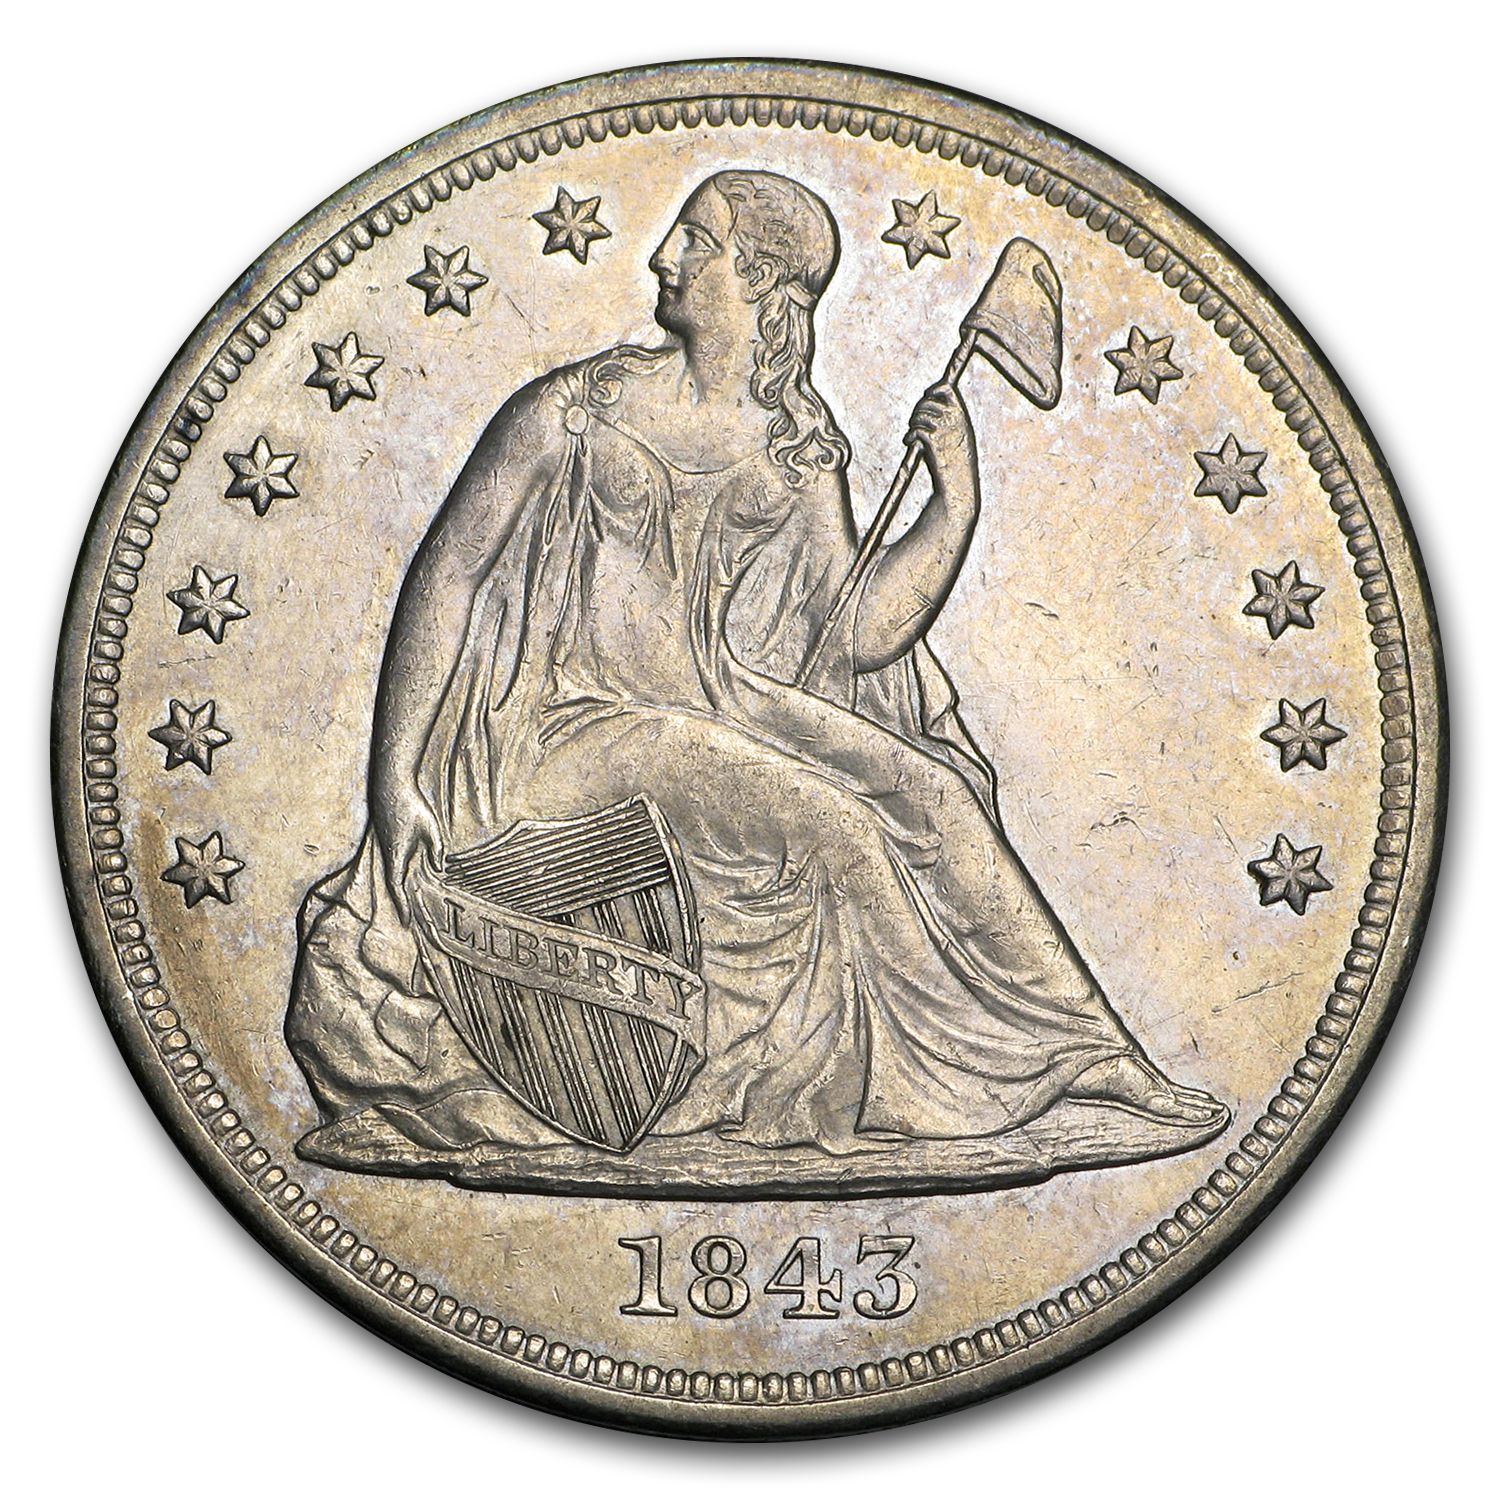 1843 Liberty Seated Dollar - Almost Uncirculated